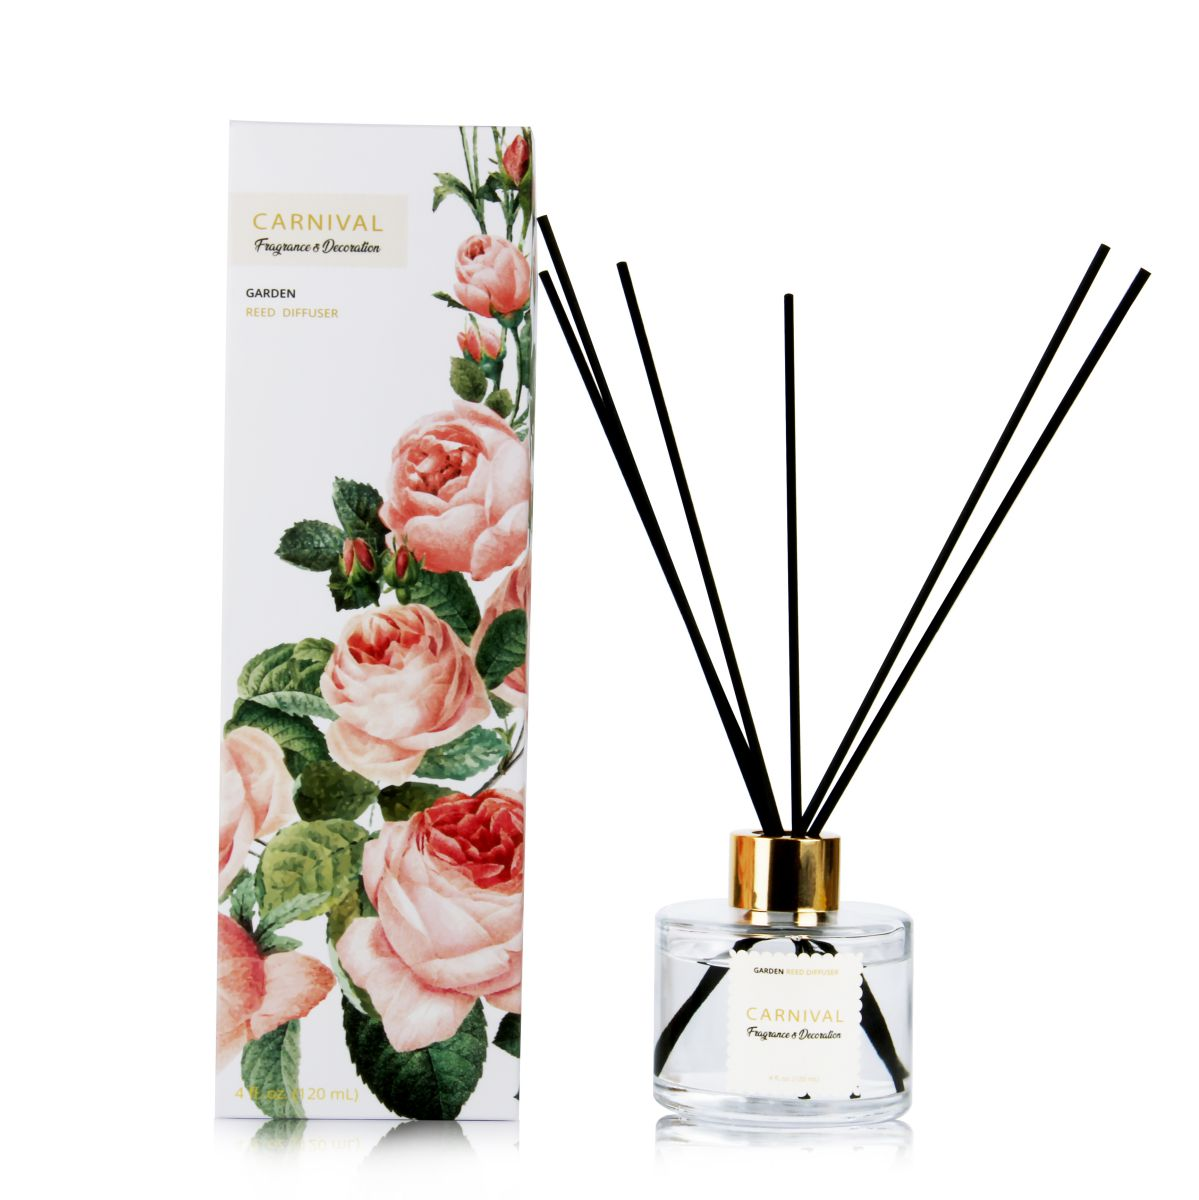 Custom Scents Air Diffuser Oils Nature Essential Oil Reed Diffuser Sticks Air Freshener Buy Reed Diffuser Essential Oil Diffuser Aromatherapy Diffuser Product On Alibaba Com